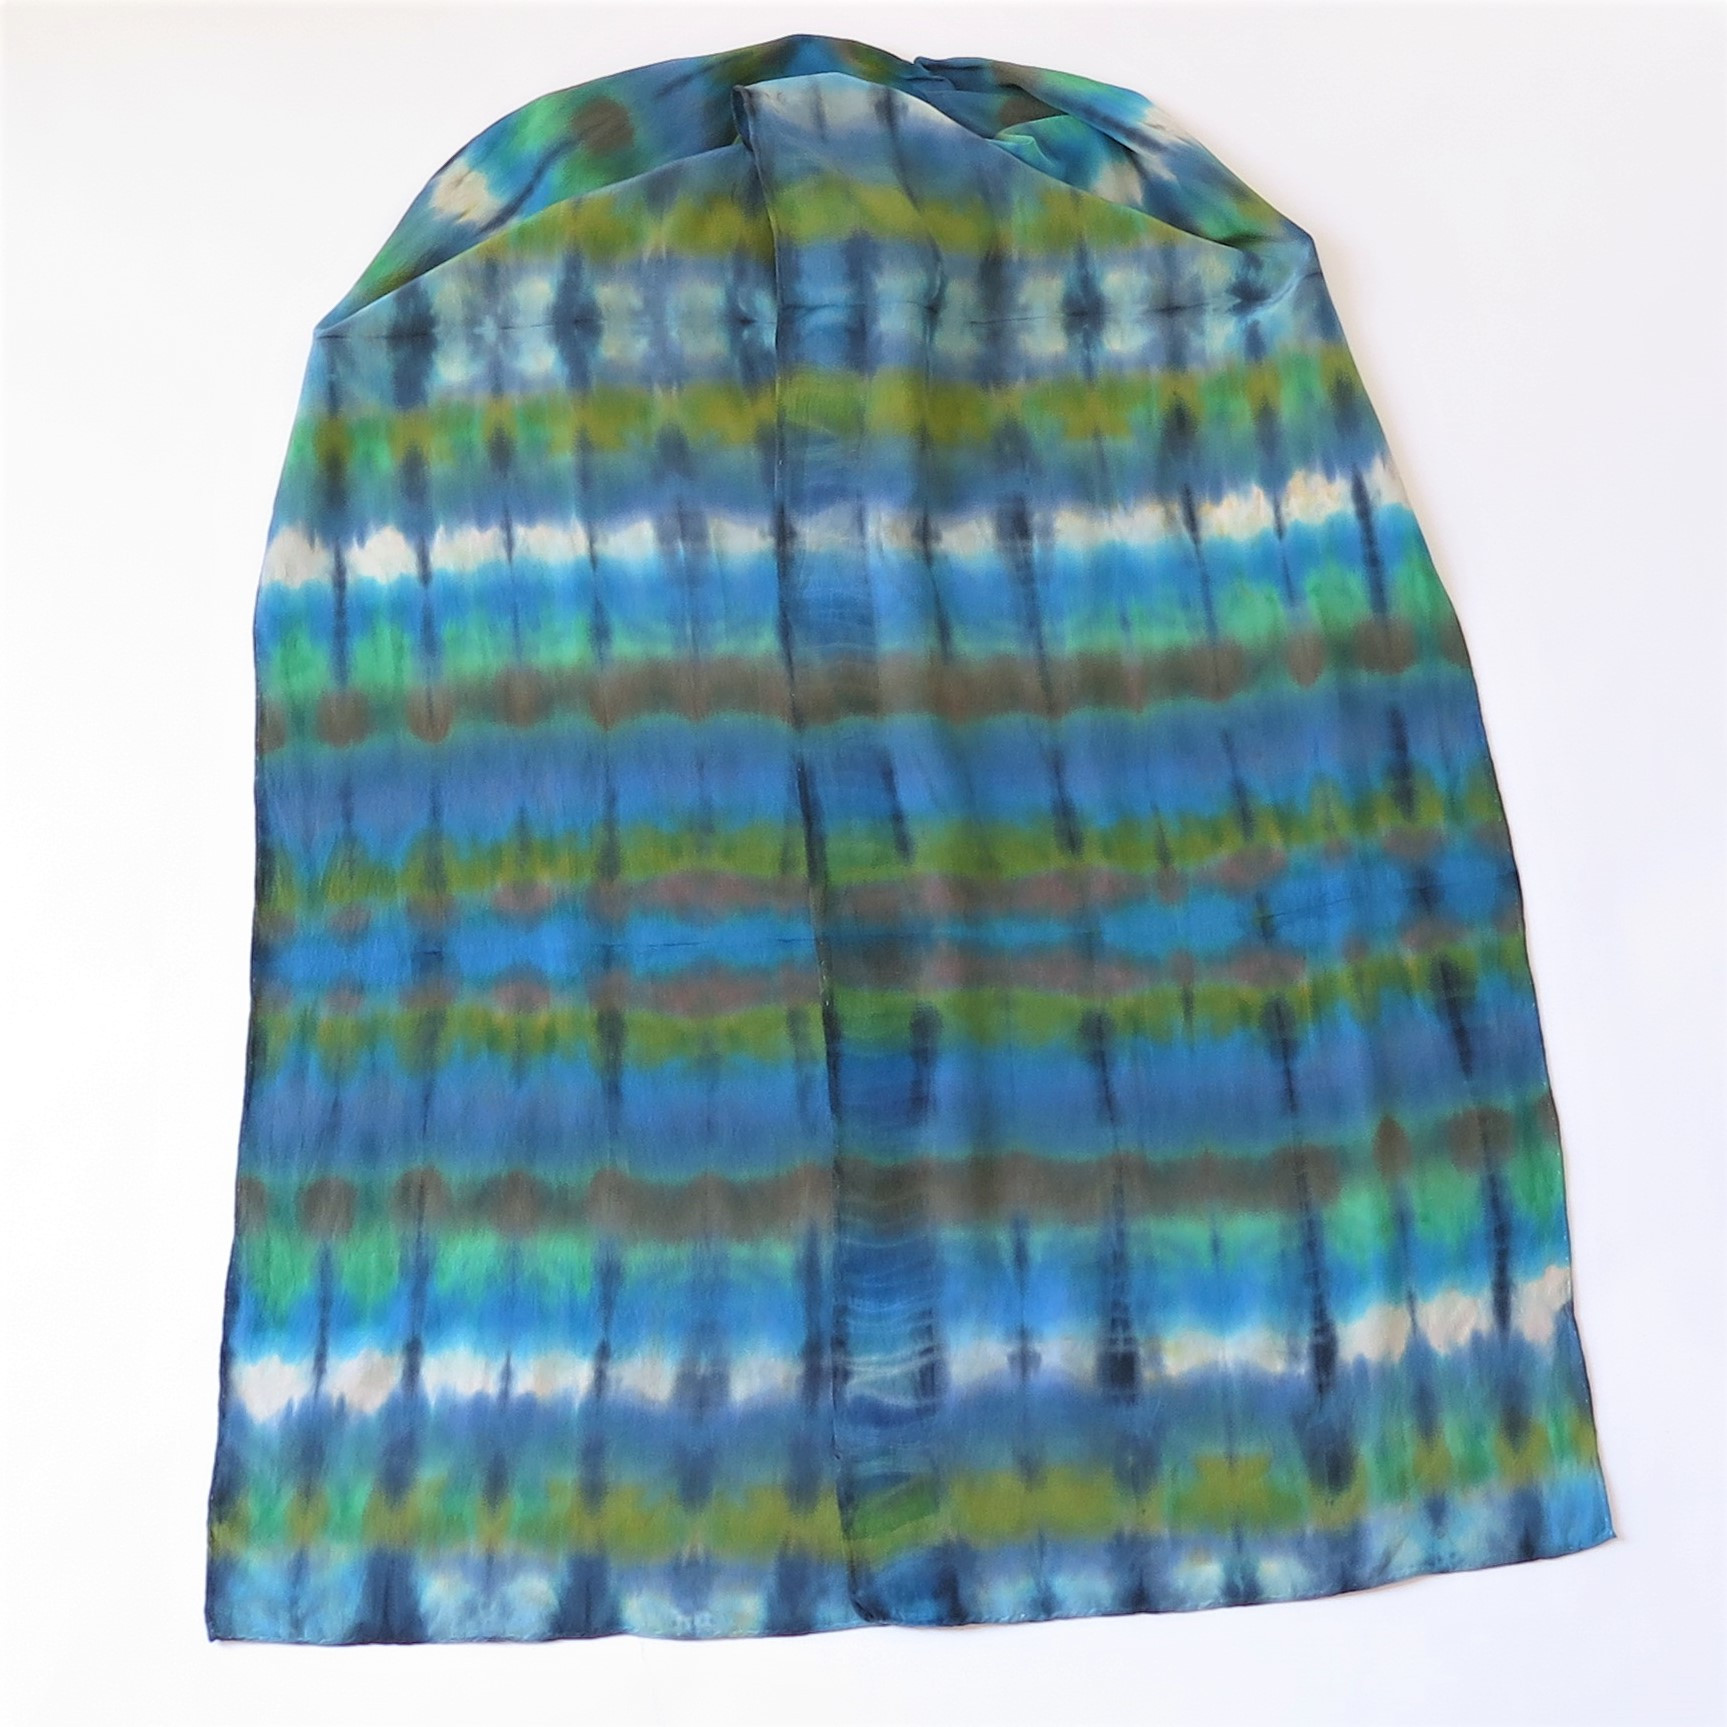 Blues-Greens-Browns Shibori Crepe Silk scarf